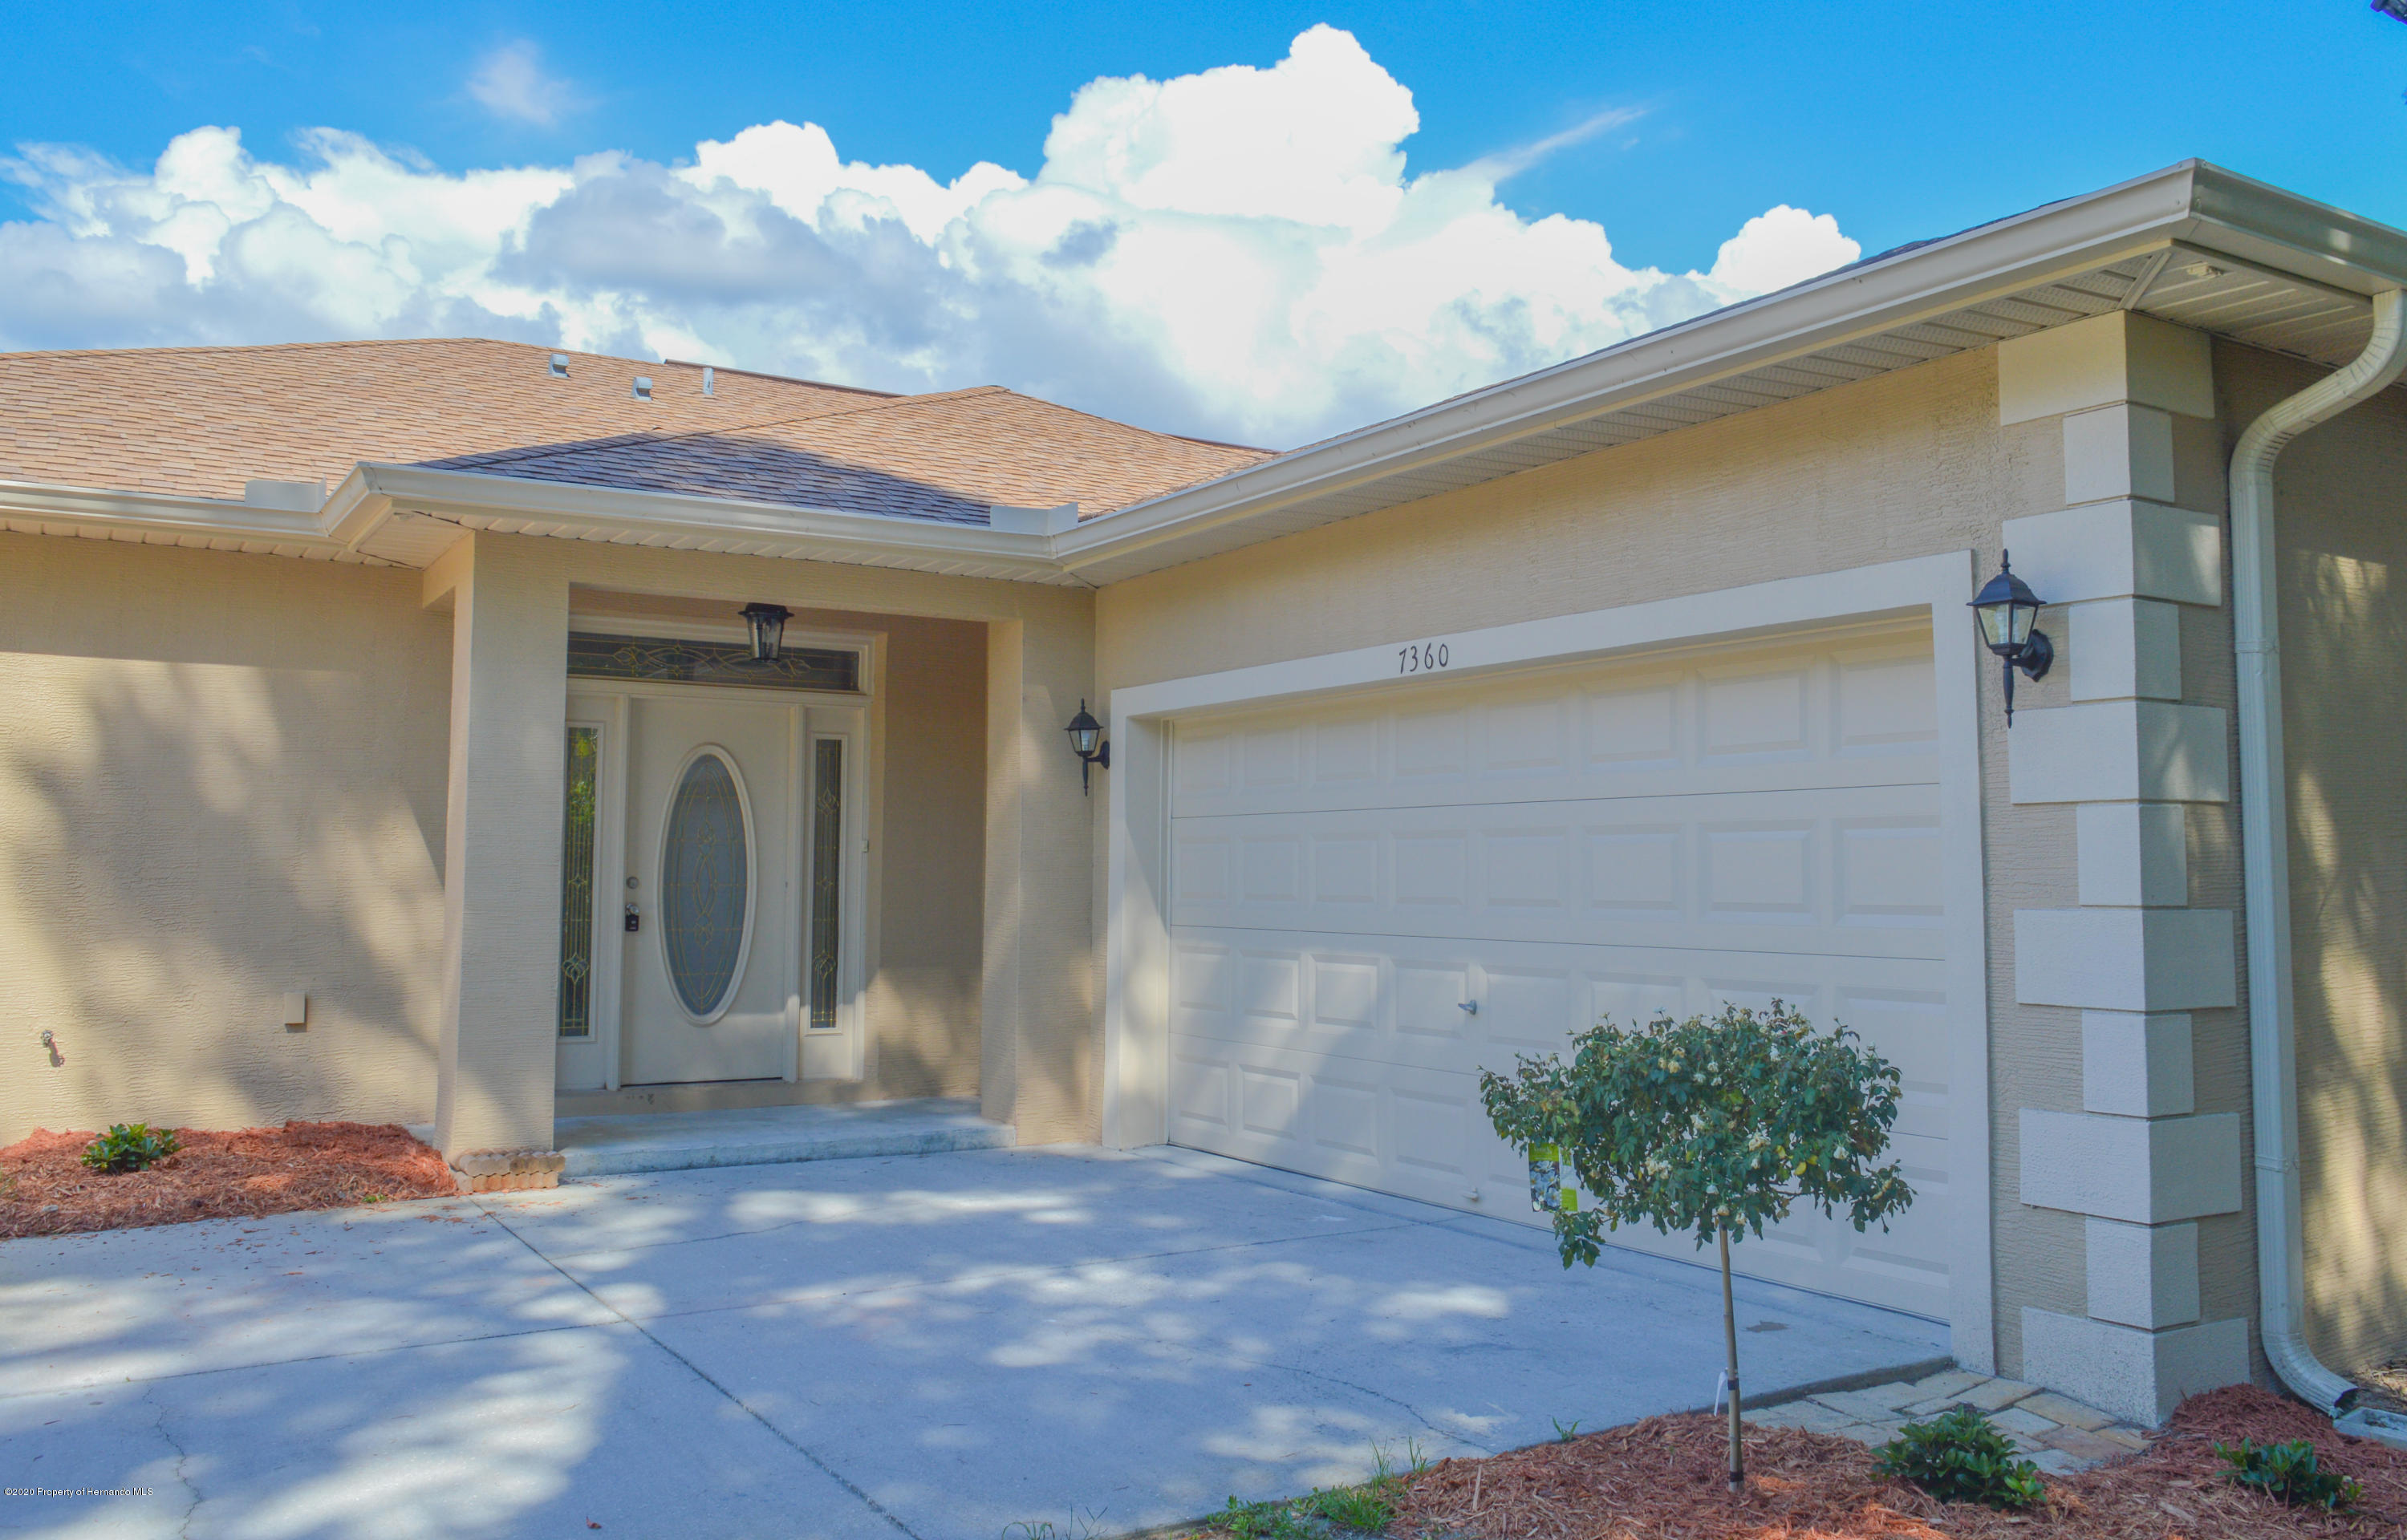 7360 Madrid Road, Weeki Wachee, FL 34613